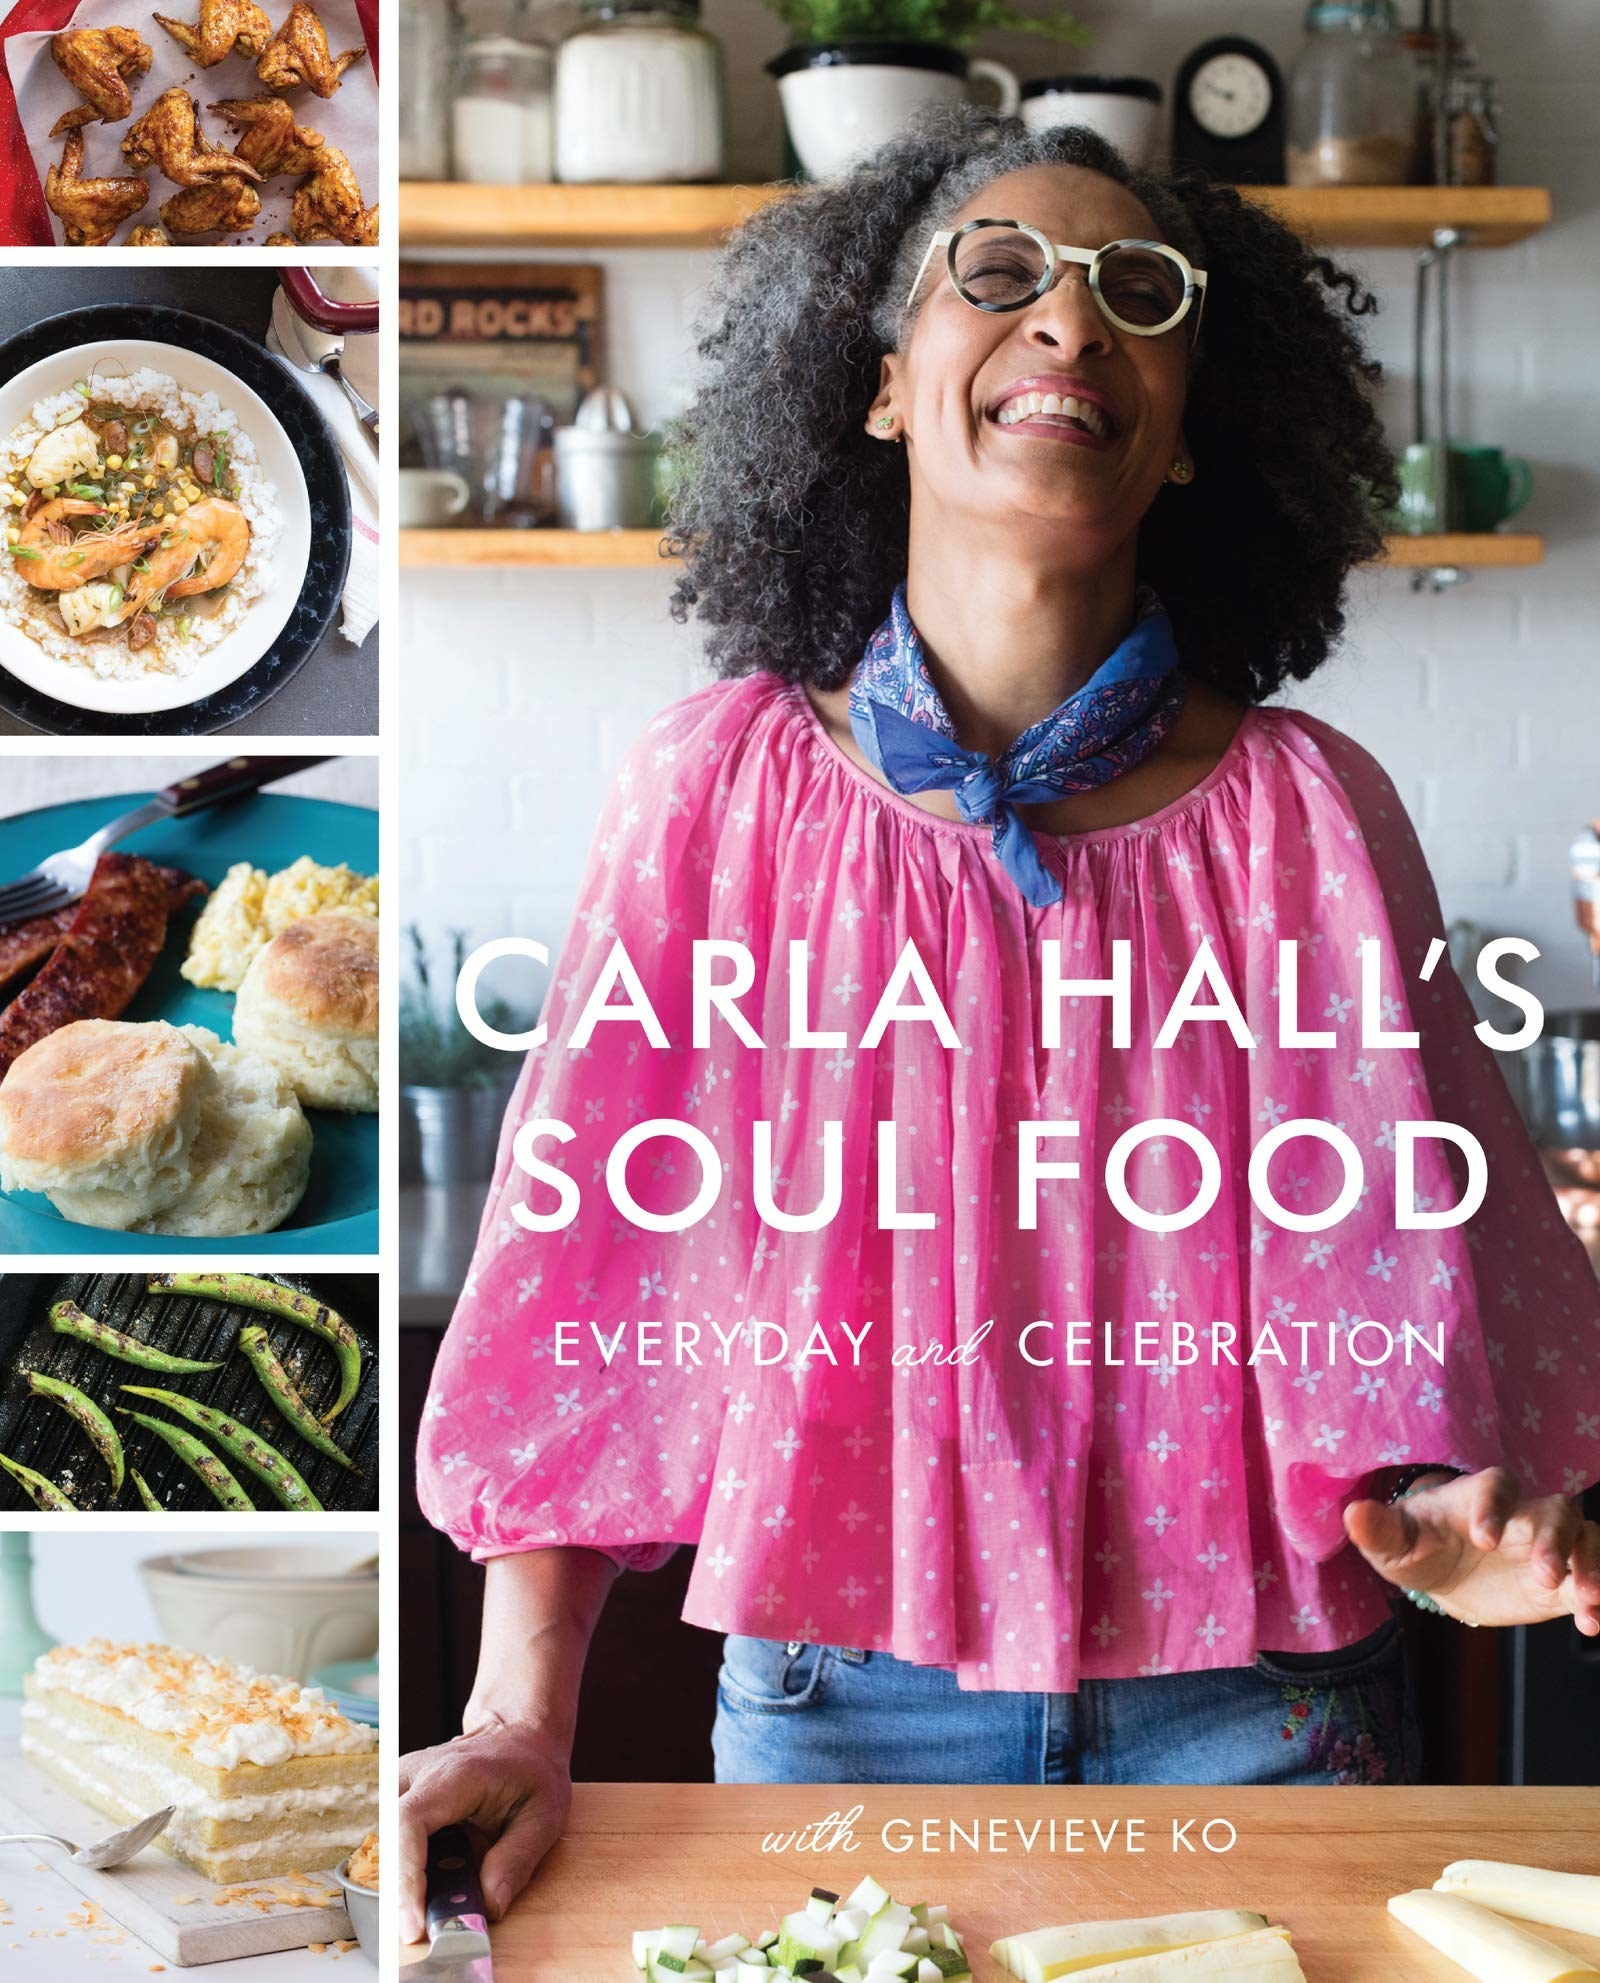 The cover of the book featuring author and chef Carla Hall